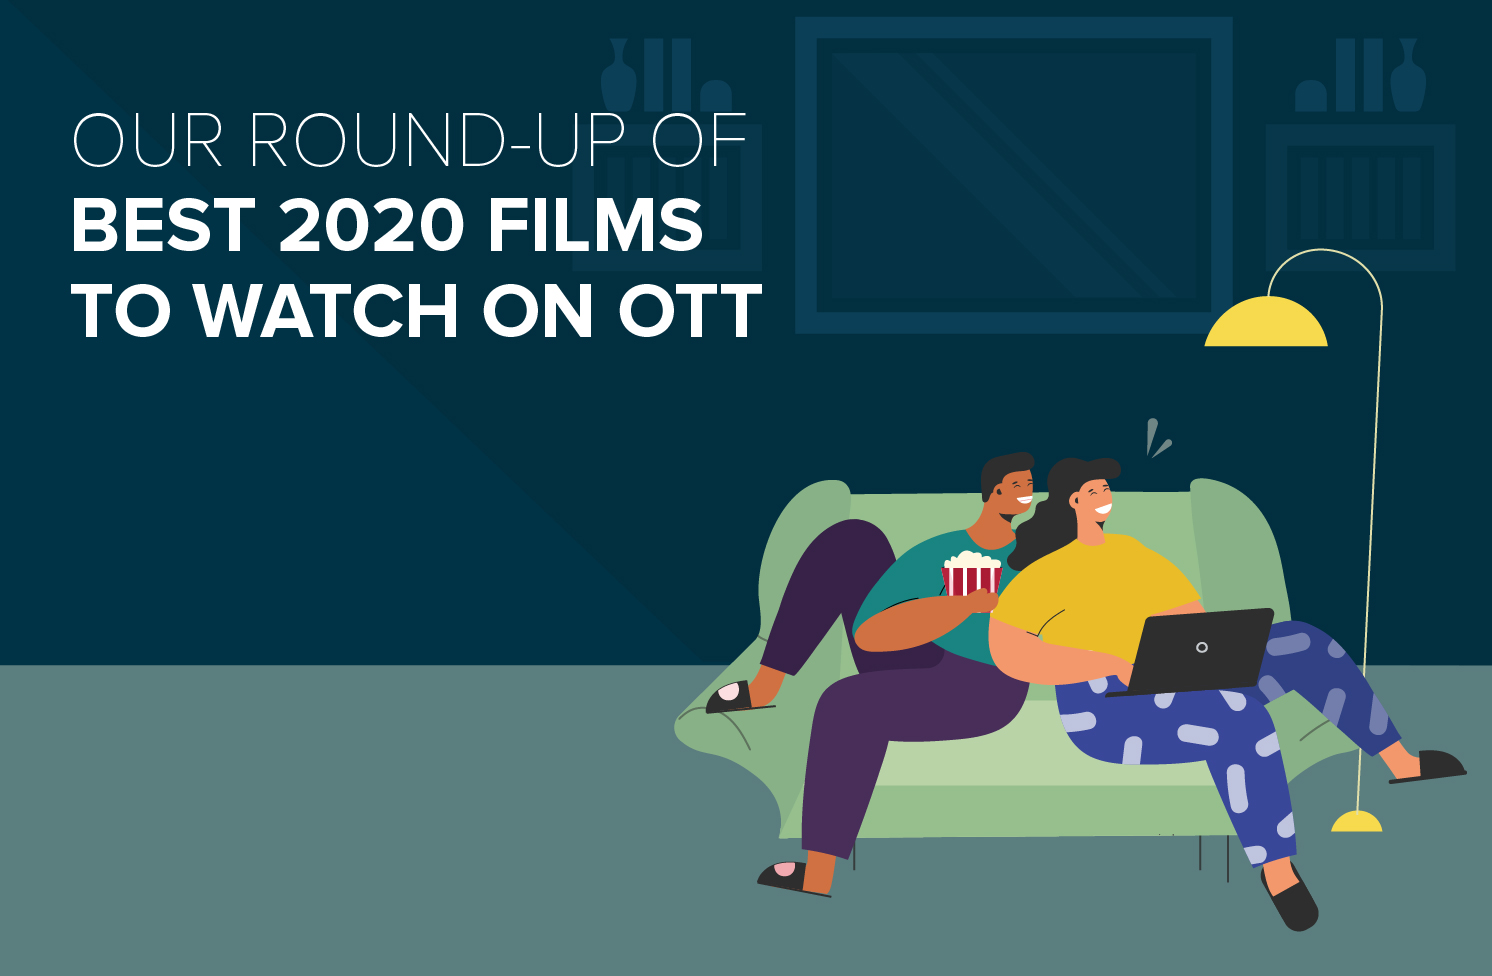 Best Movies Of 2020 on OTT